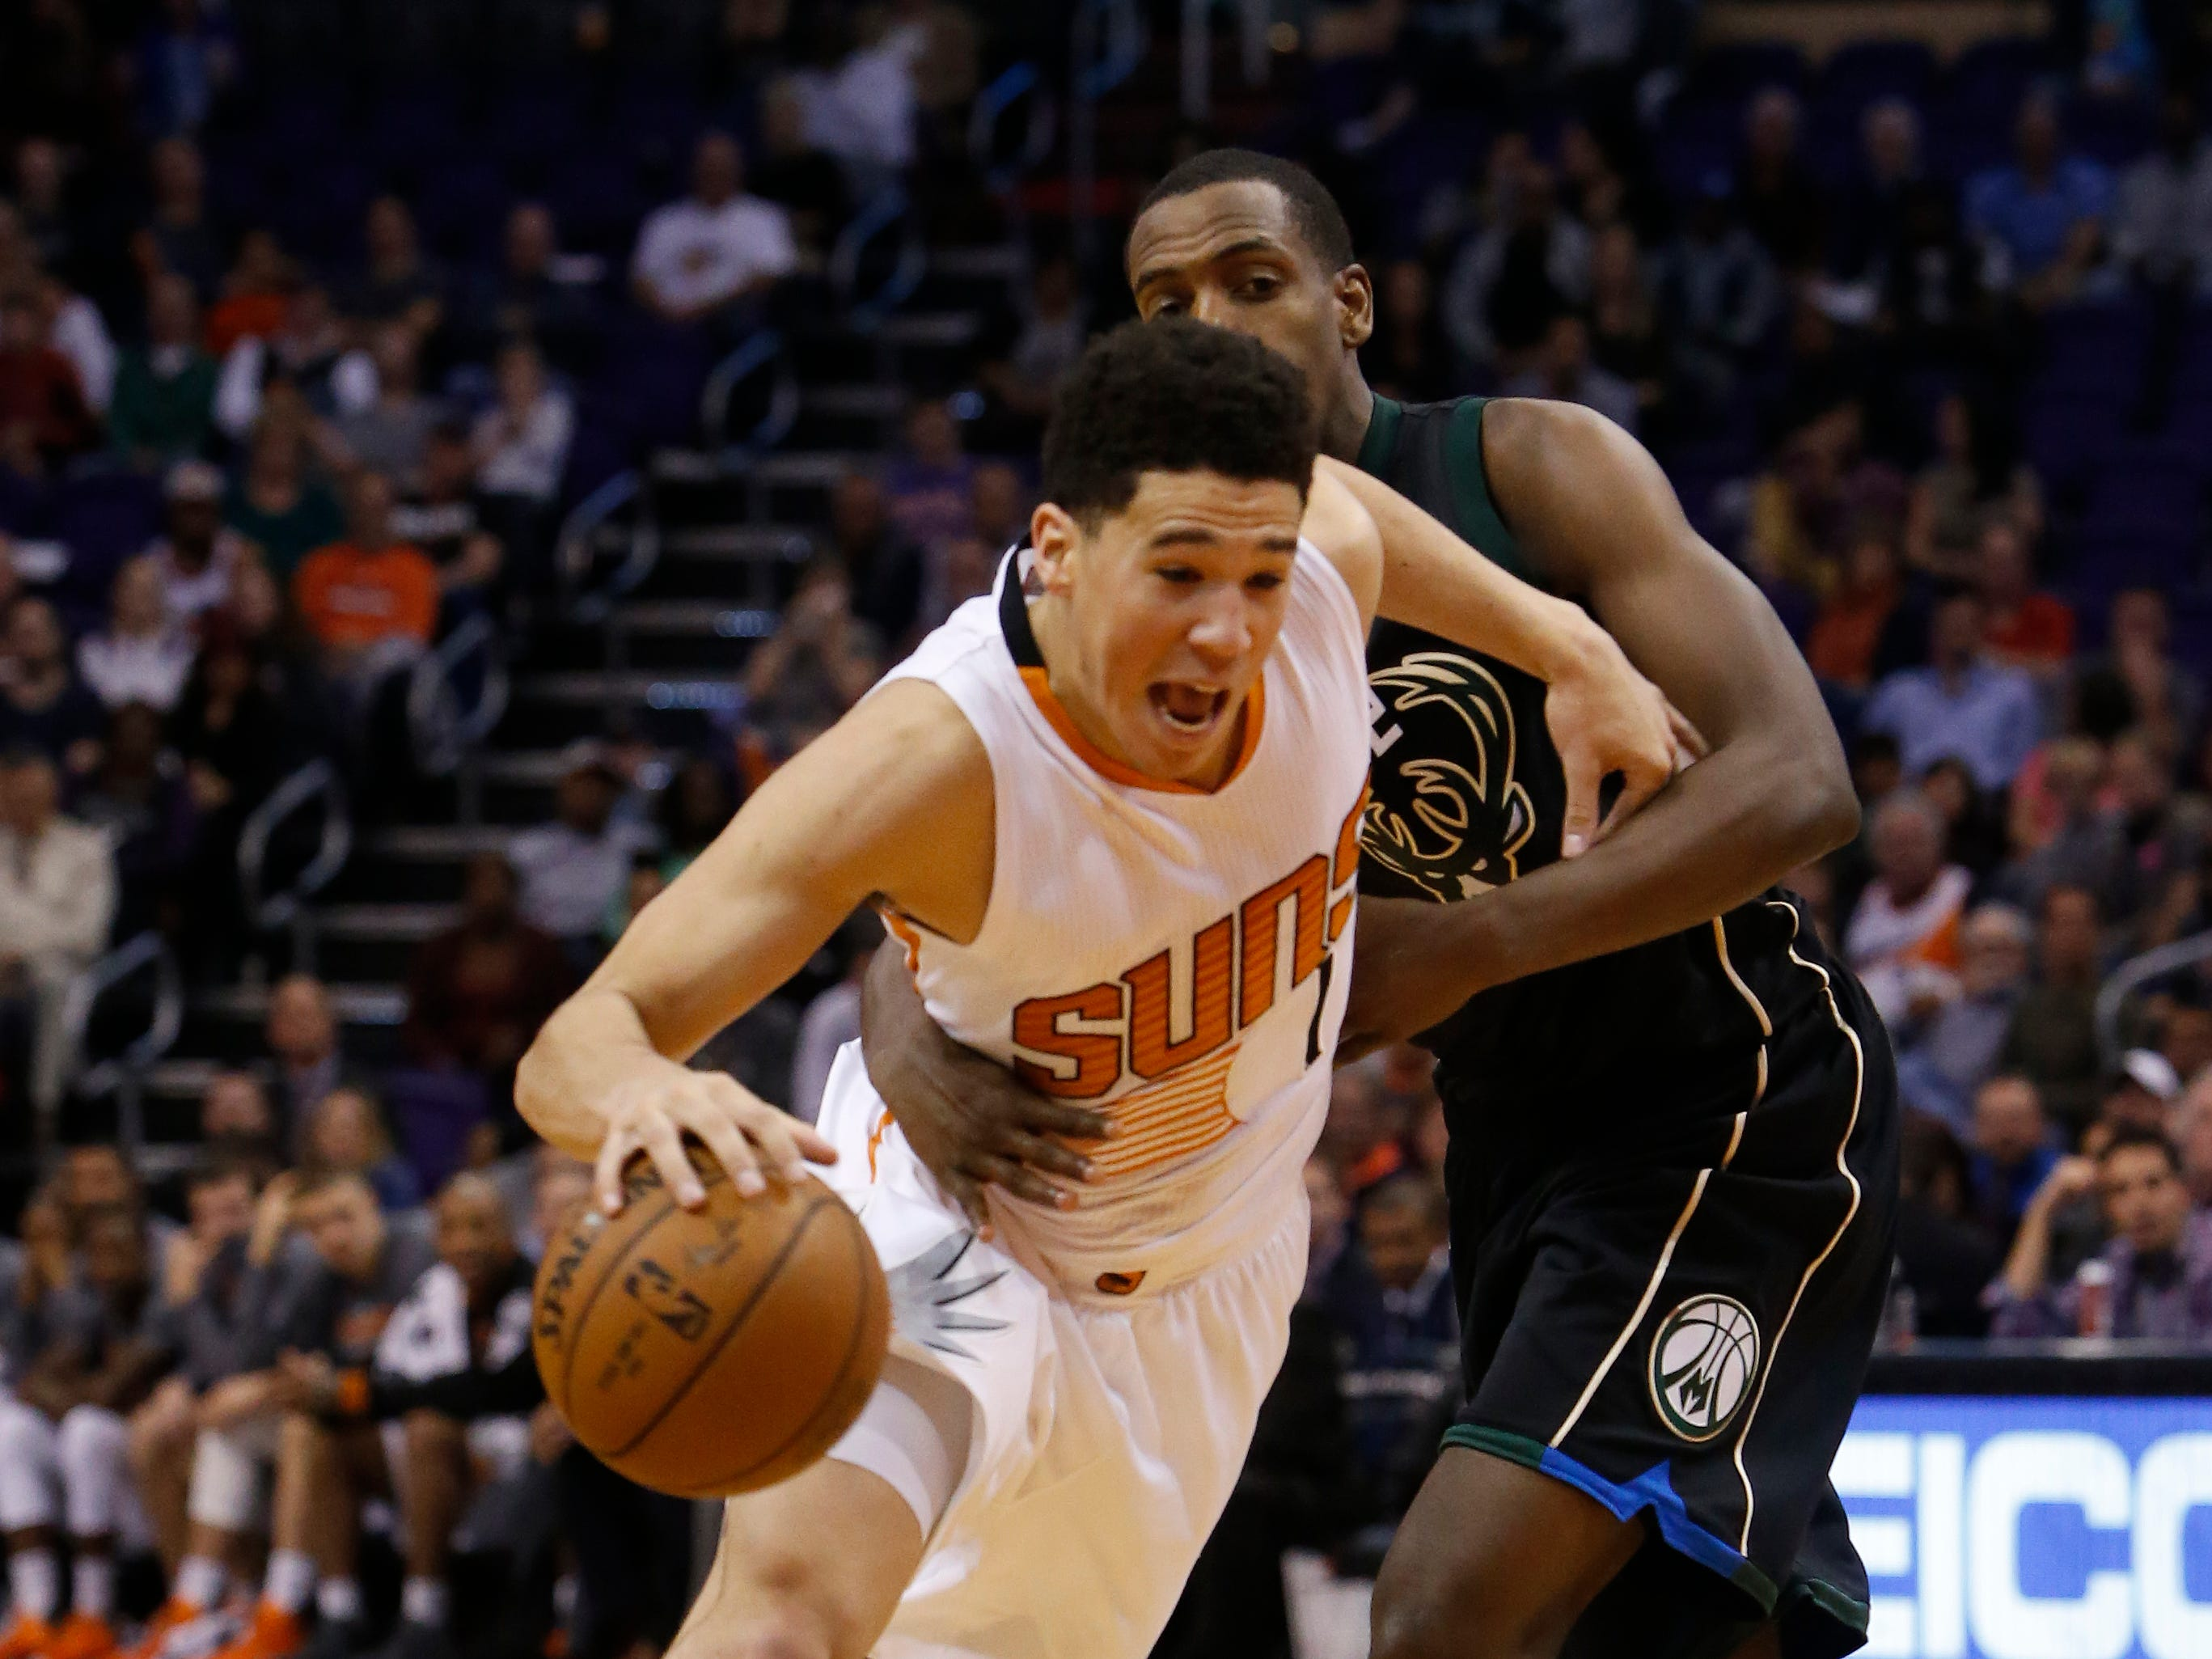 2015-16 | Suns MVP: Devin Booker. Eric Bledsoe averaged more points per game, but didn't even play half the season. Brandon Knight almost averaged 20, but missed about a third of the year. Booker, an NBA All-Rookie first teamer, showed flashes that he could be special.